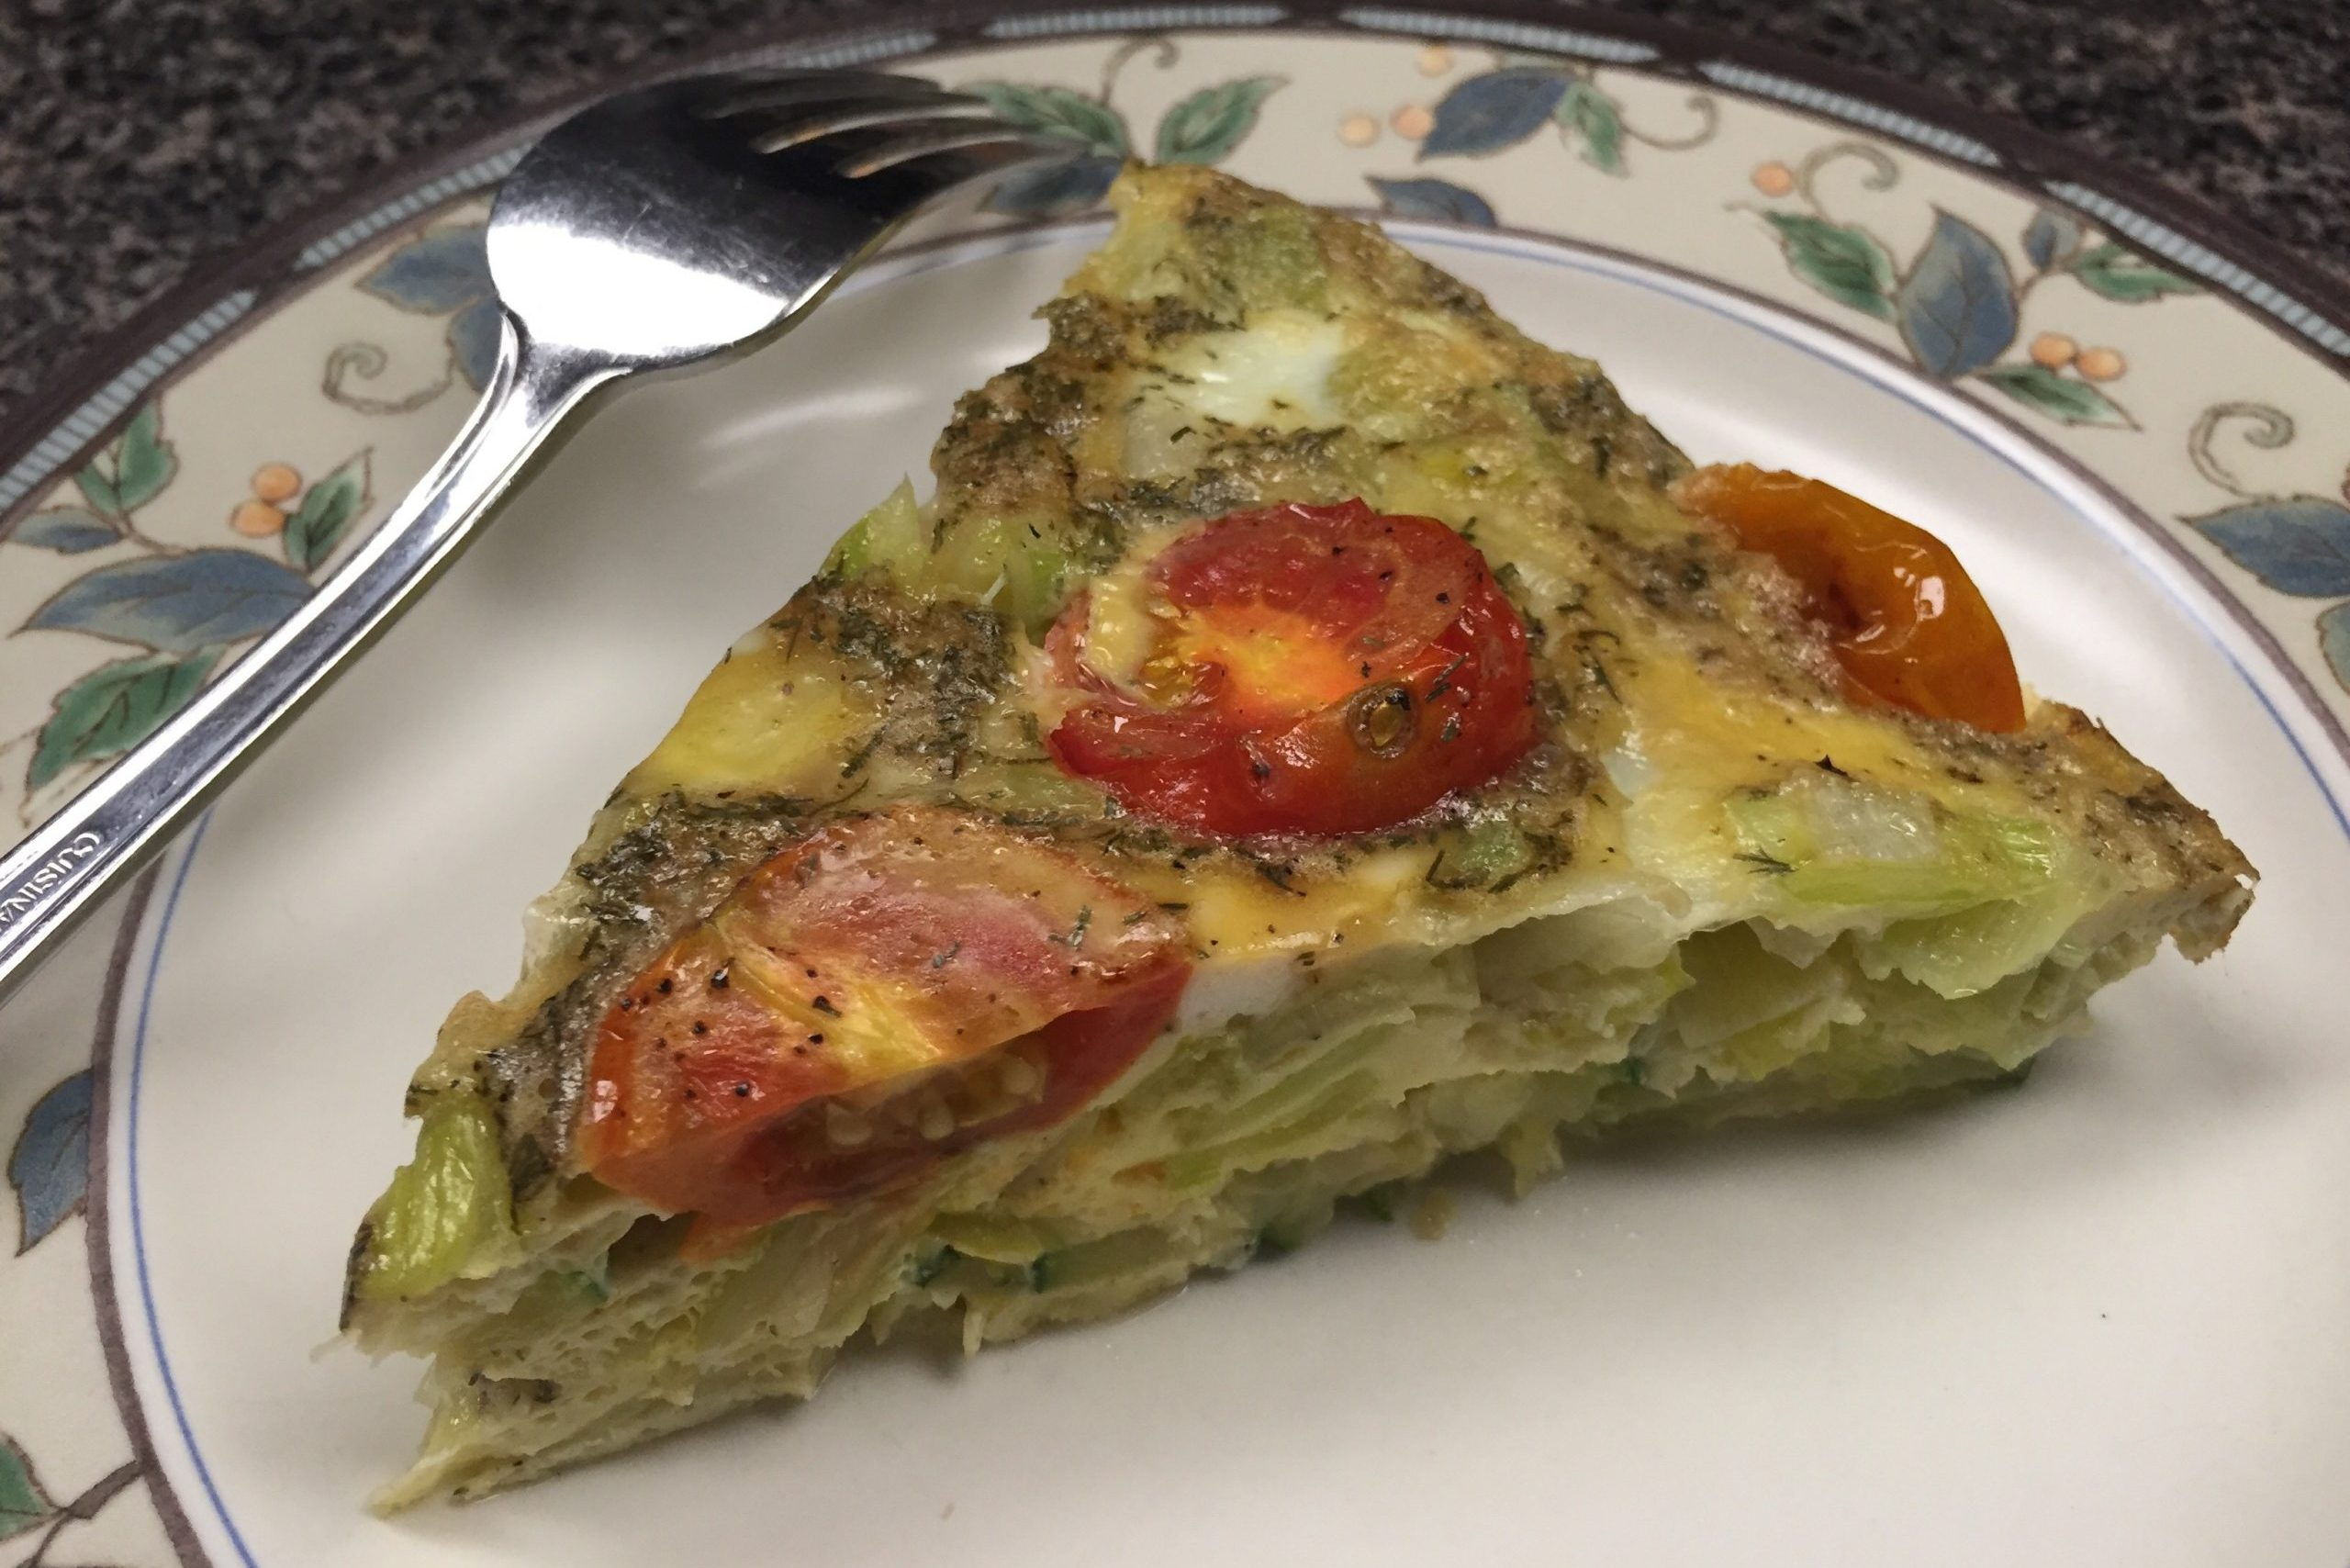 Summer Corn, Zucchini and Roasted Tomato Frittata